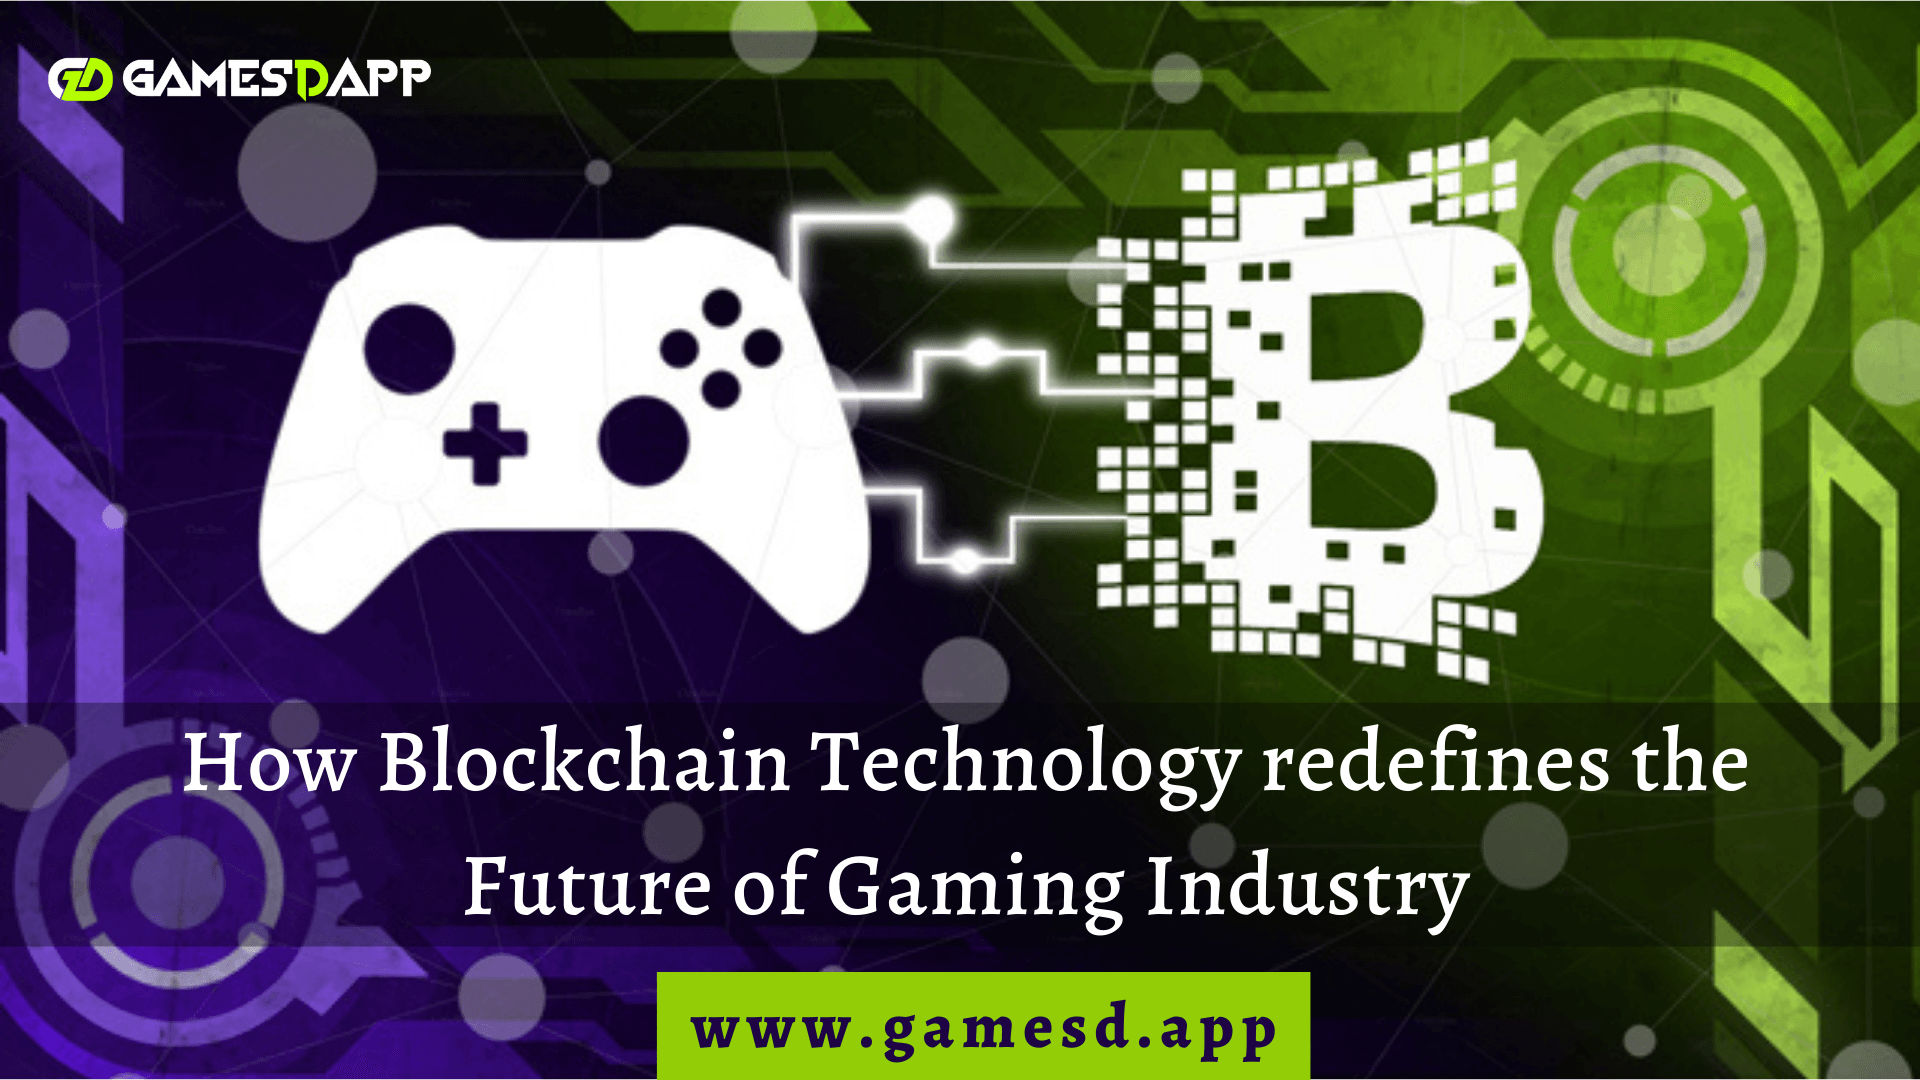 How will Blockchain Technology Redefine the Future of Gaming?